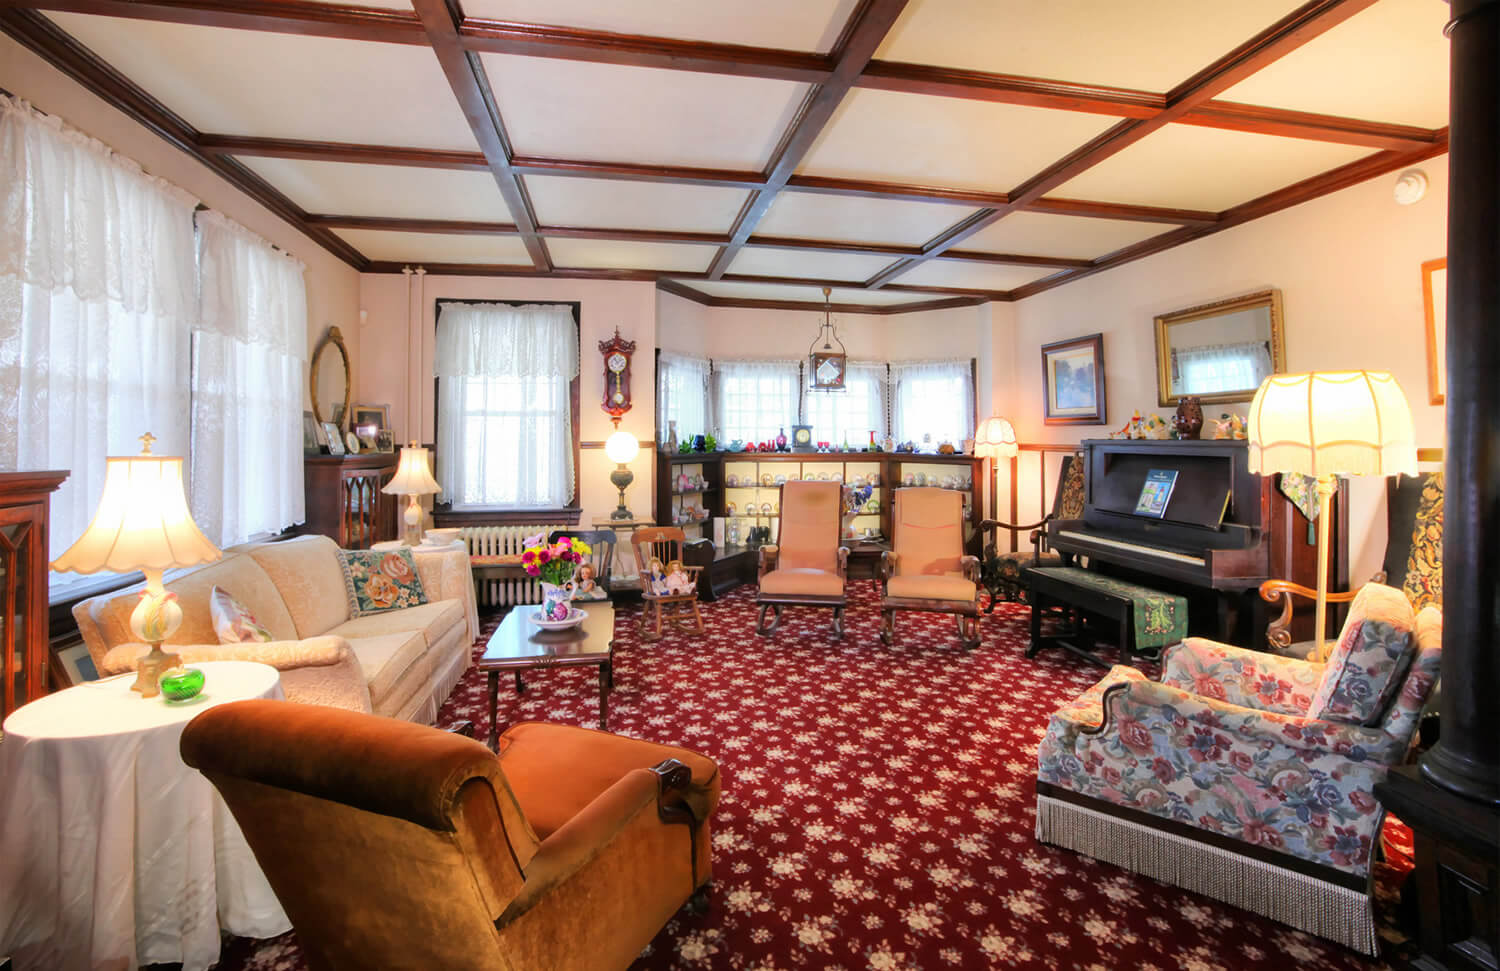 antique-filled living room with maroon floral carpet, piano, beige couch, and 2 armchairs